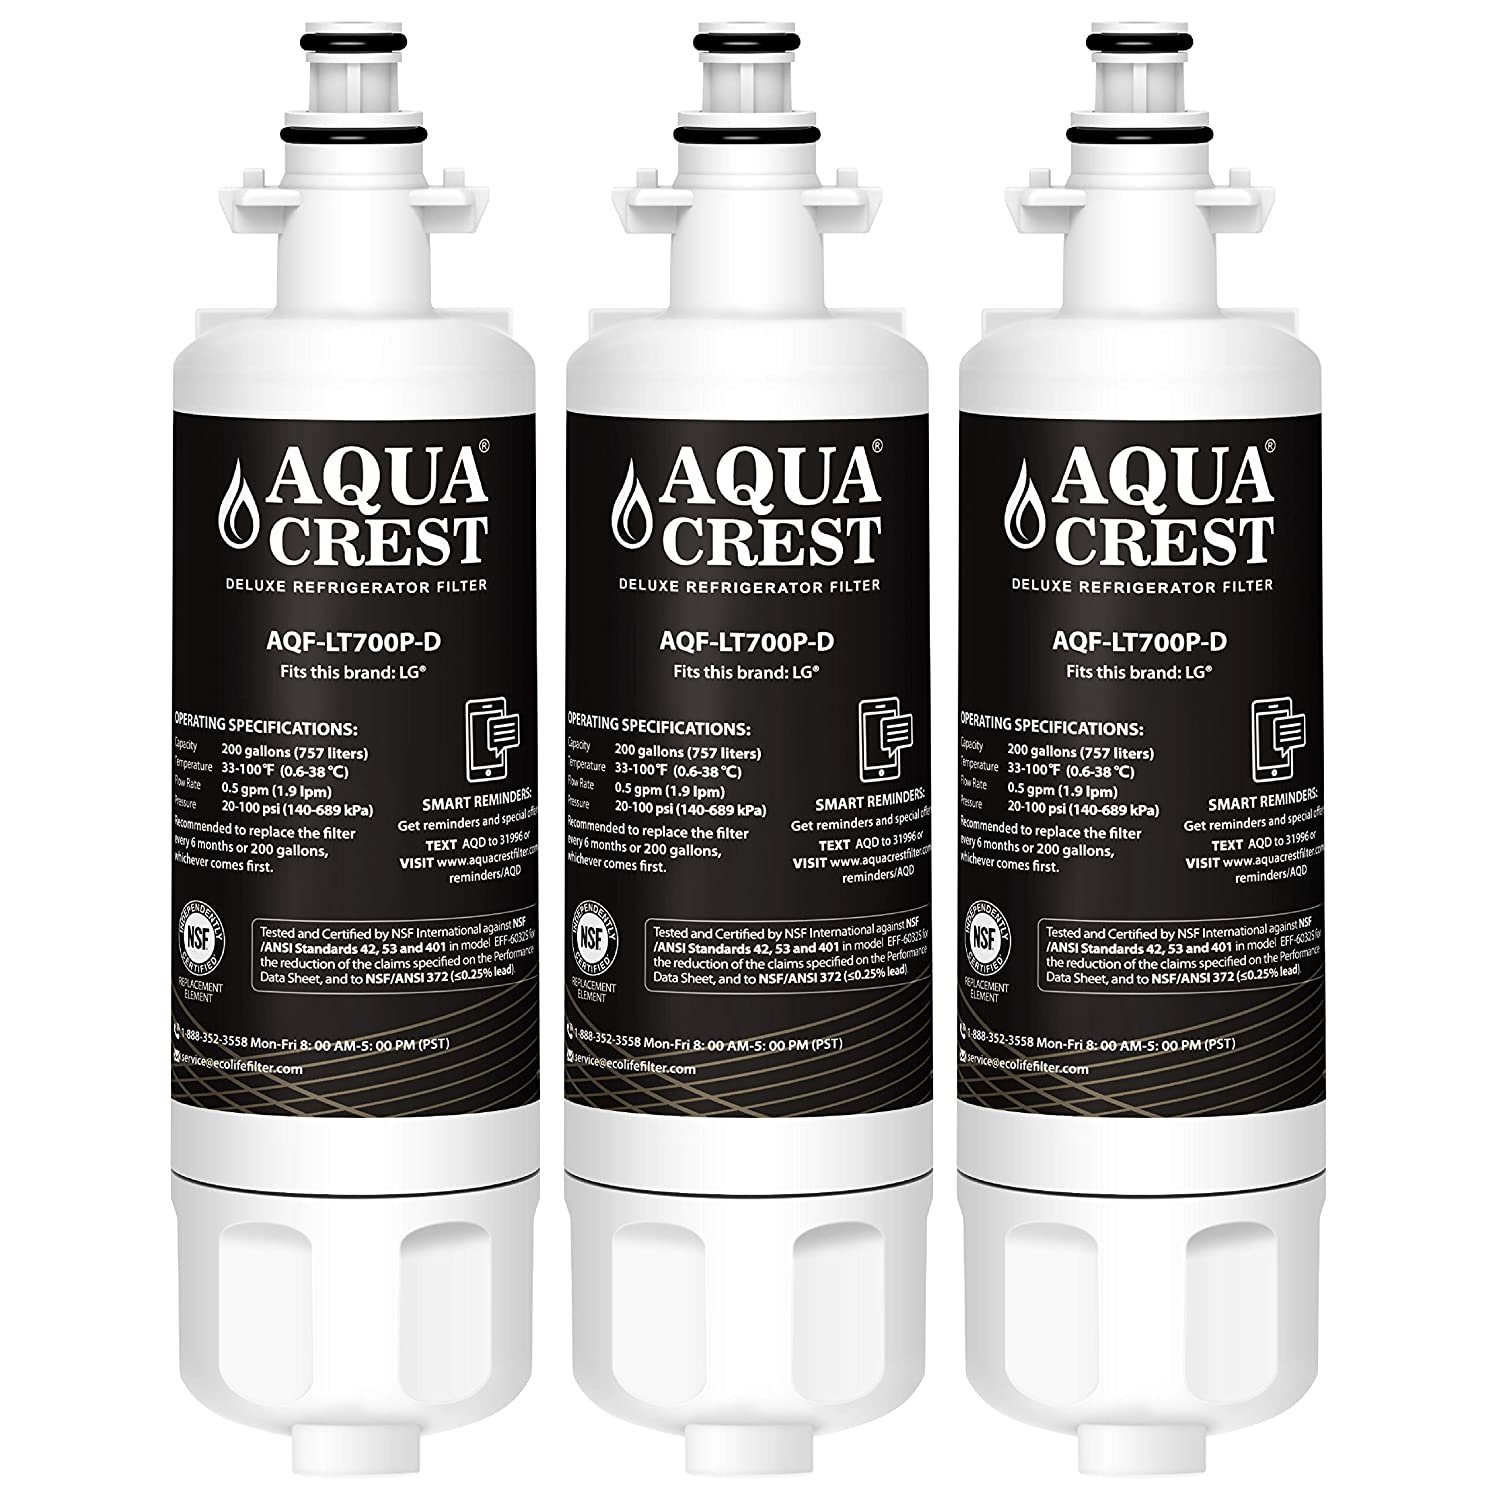 AQUACREST NSF 401, 53&42 ADQ36006101 Refrigerator Water Filter, Compatible with LG LT700P, Kenmore 9690, 46-9690, ADQ36006102 (Pack of 3)